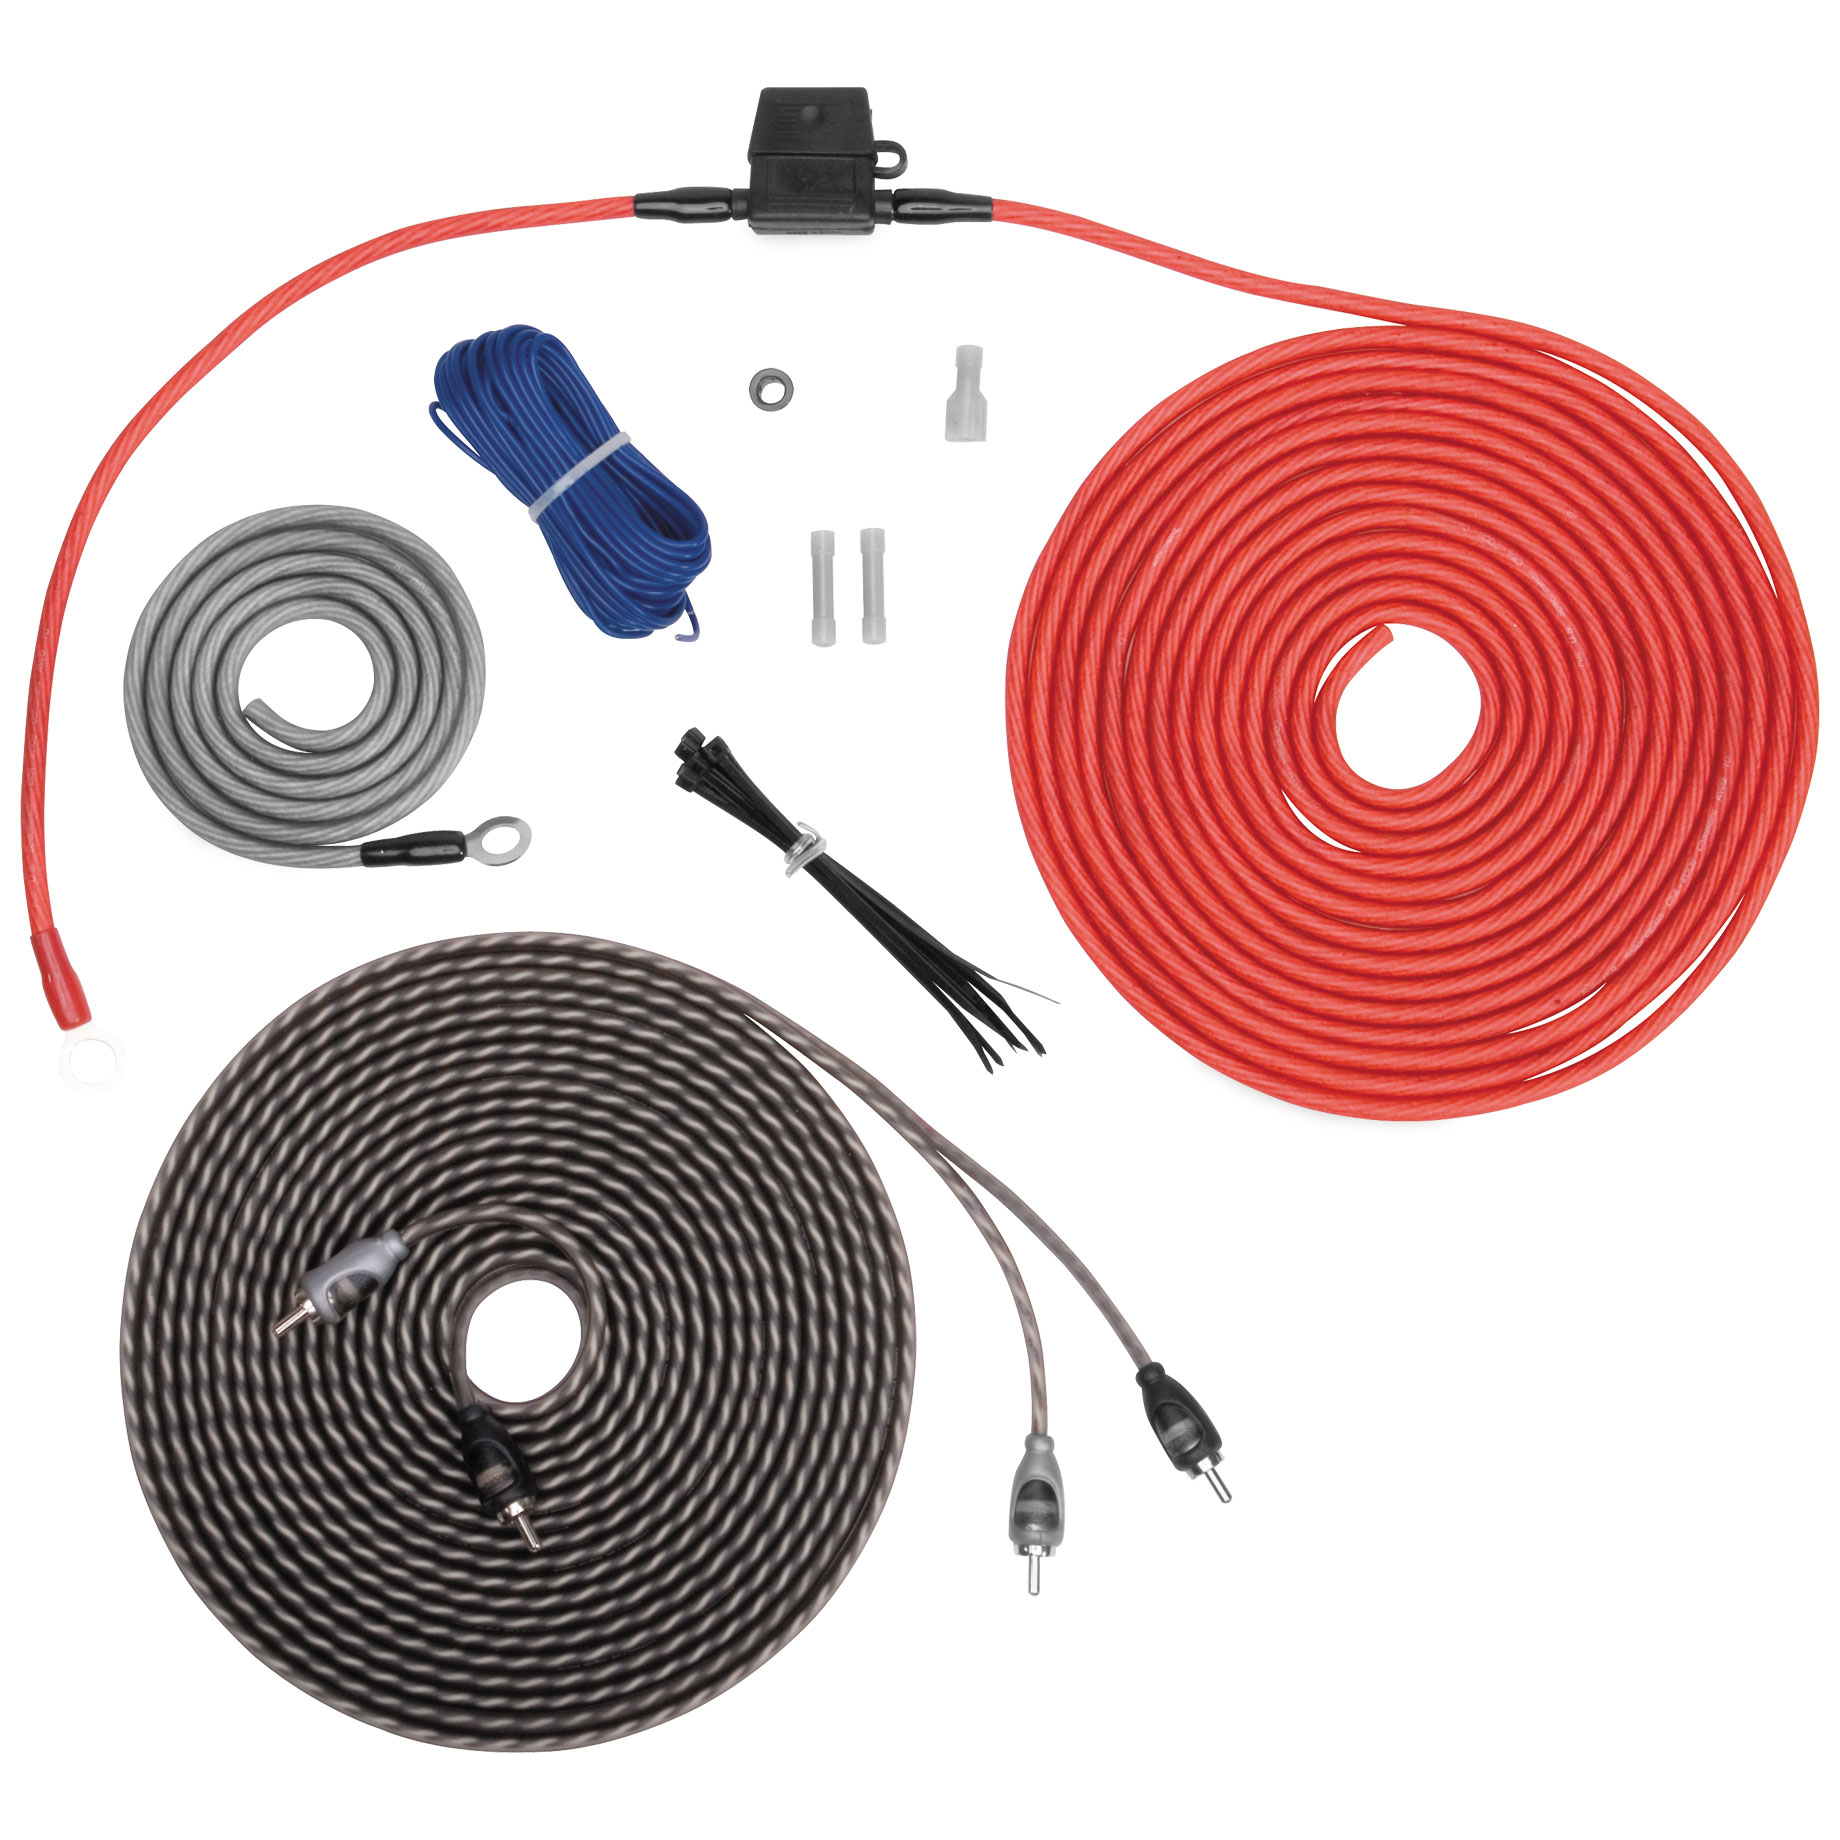 Rockford Fosgate 10-AWG Power and Signal Installation Kit